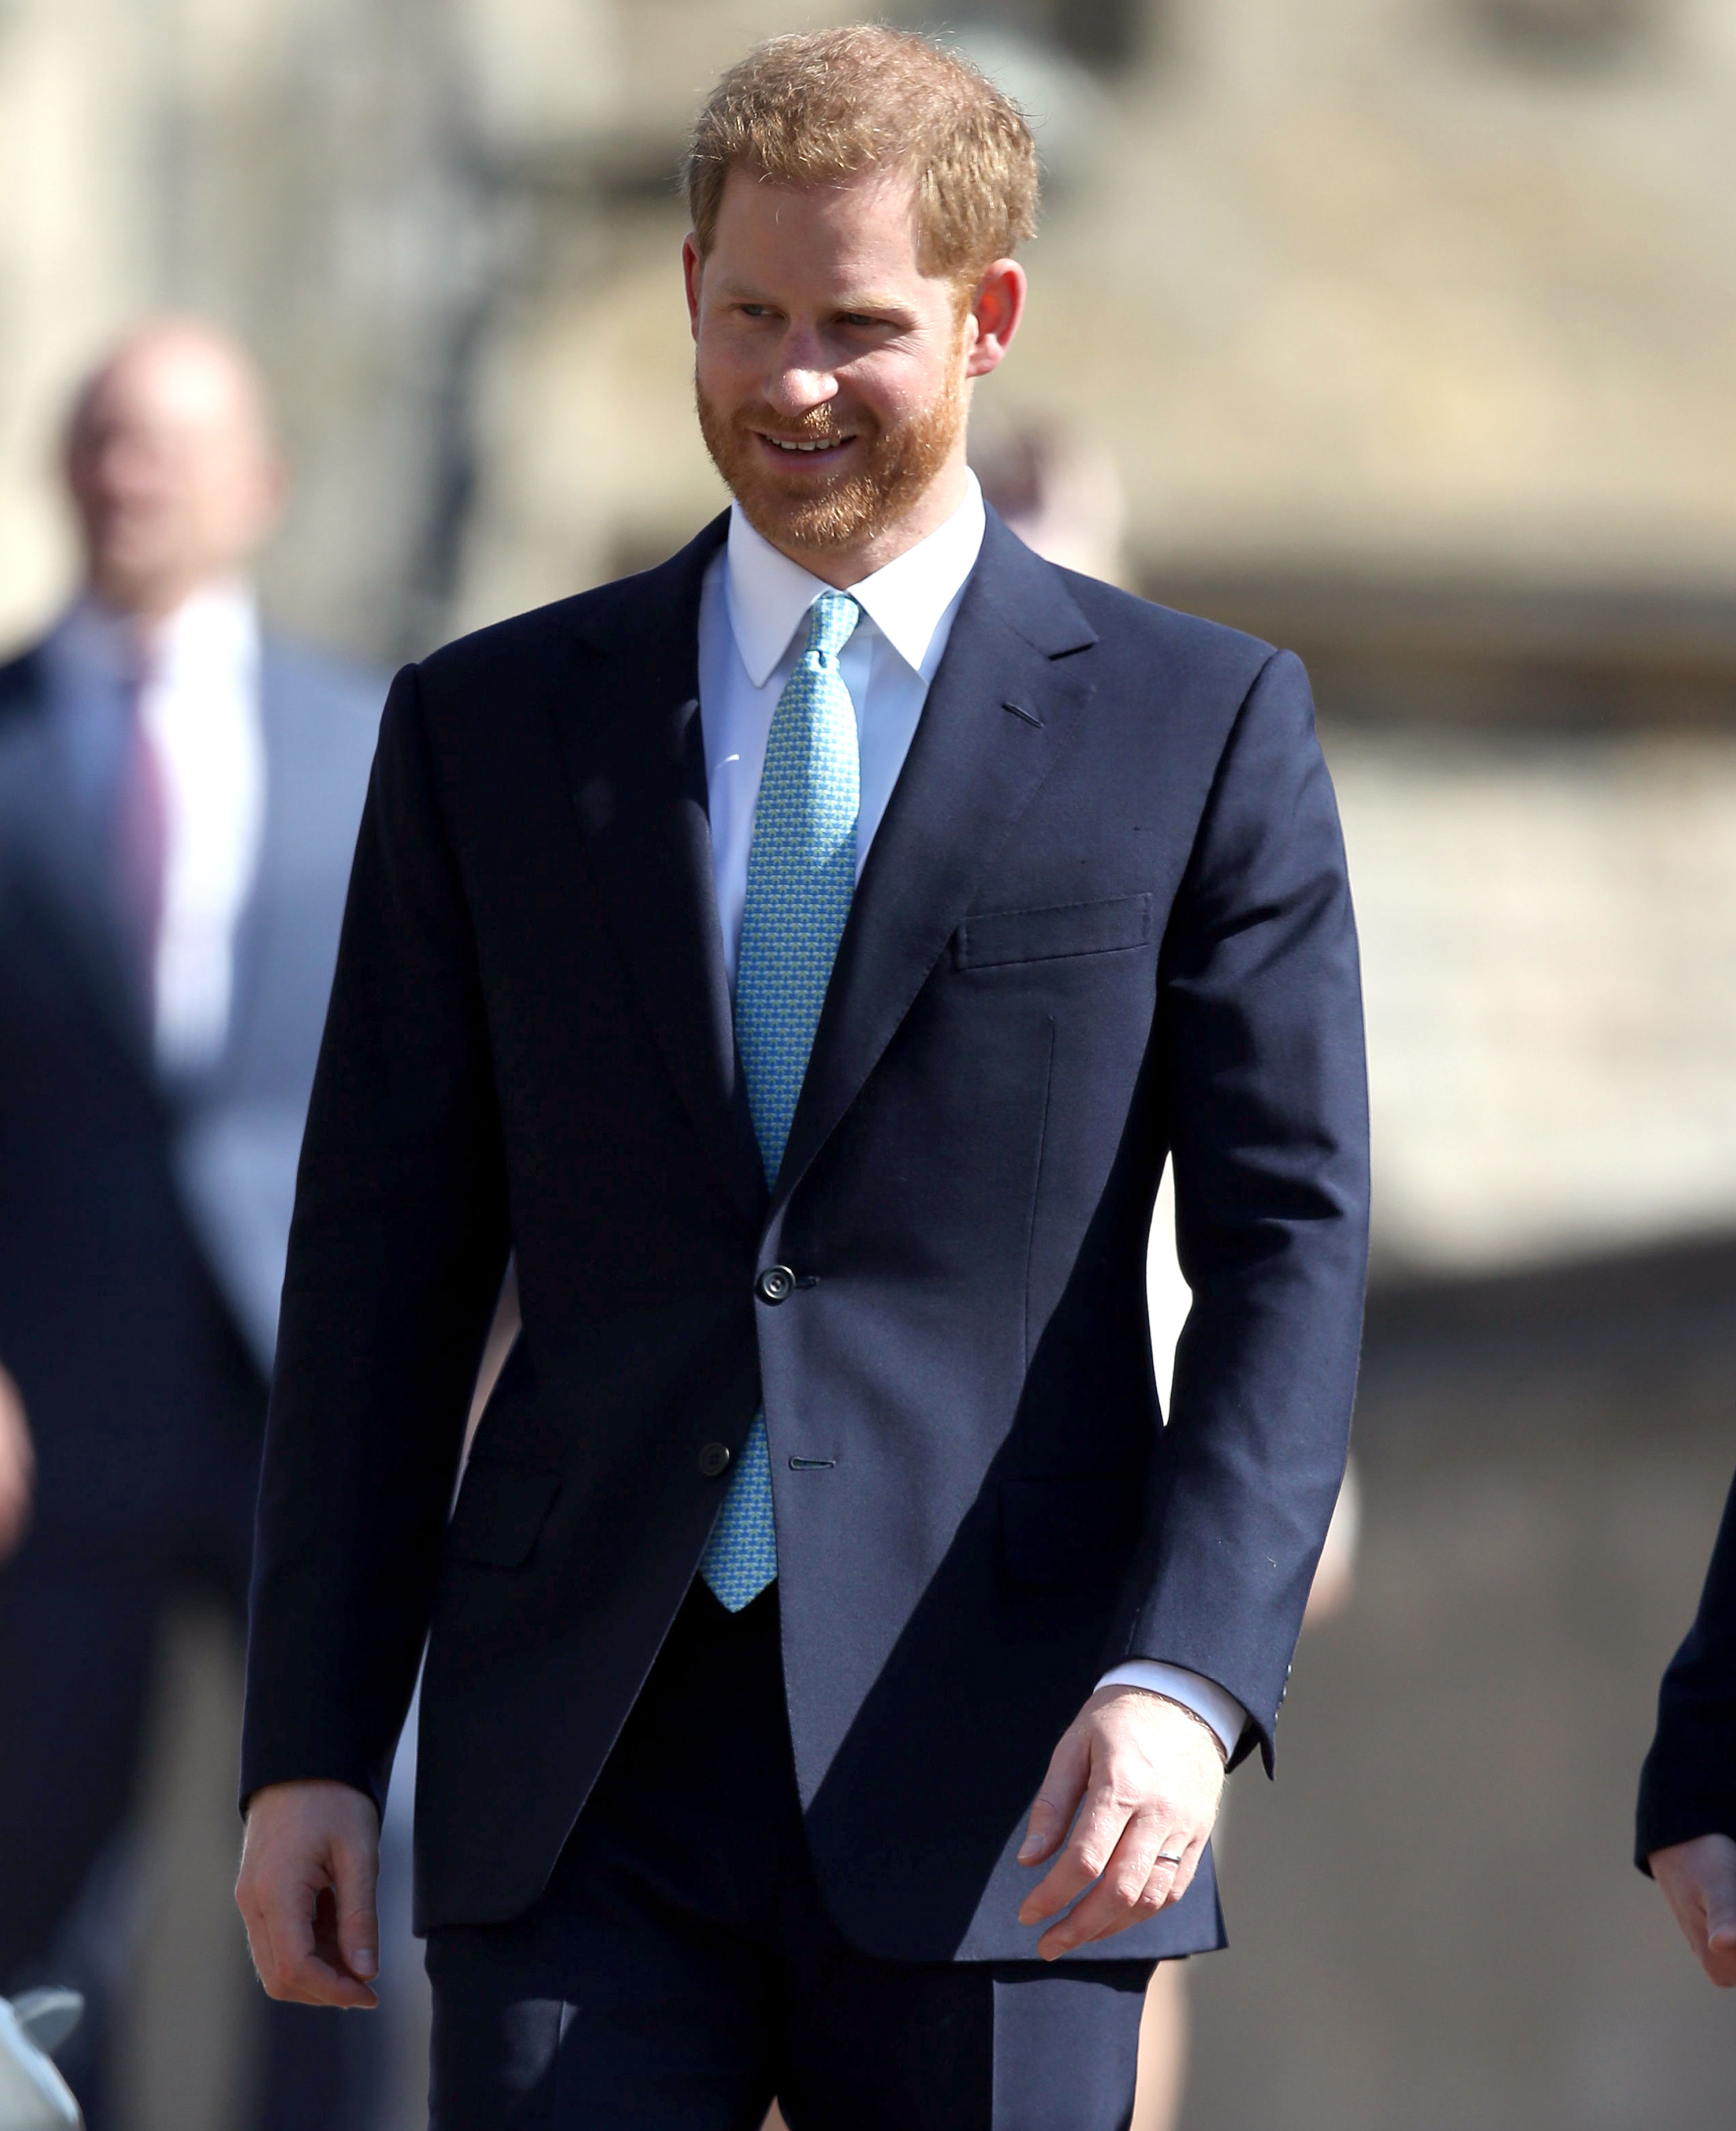 Prince Harry Royal Family Celebrate Easter - Harry stepped away from his home with Meghan to join his brood as they celebrated Easter together.